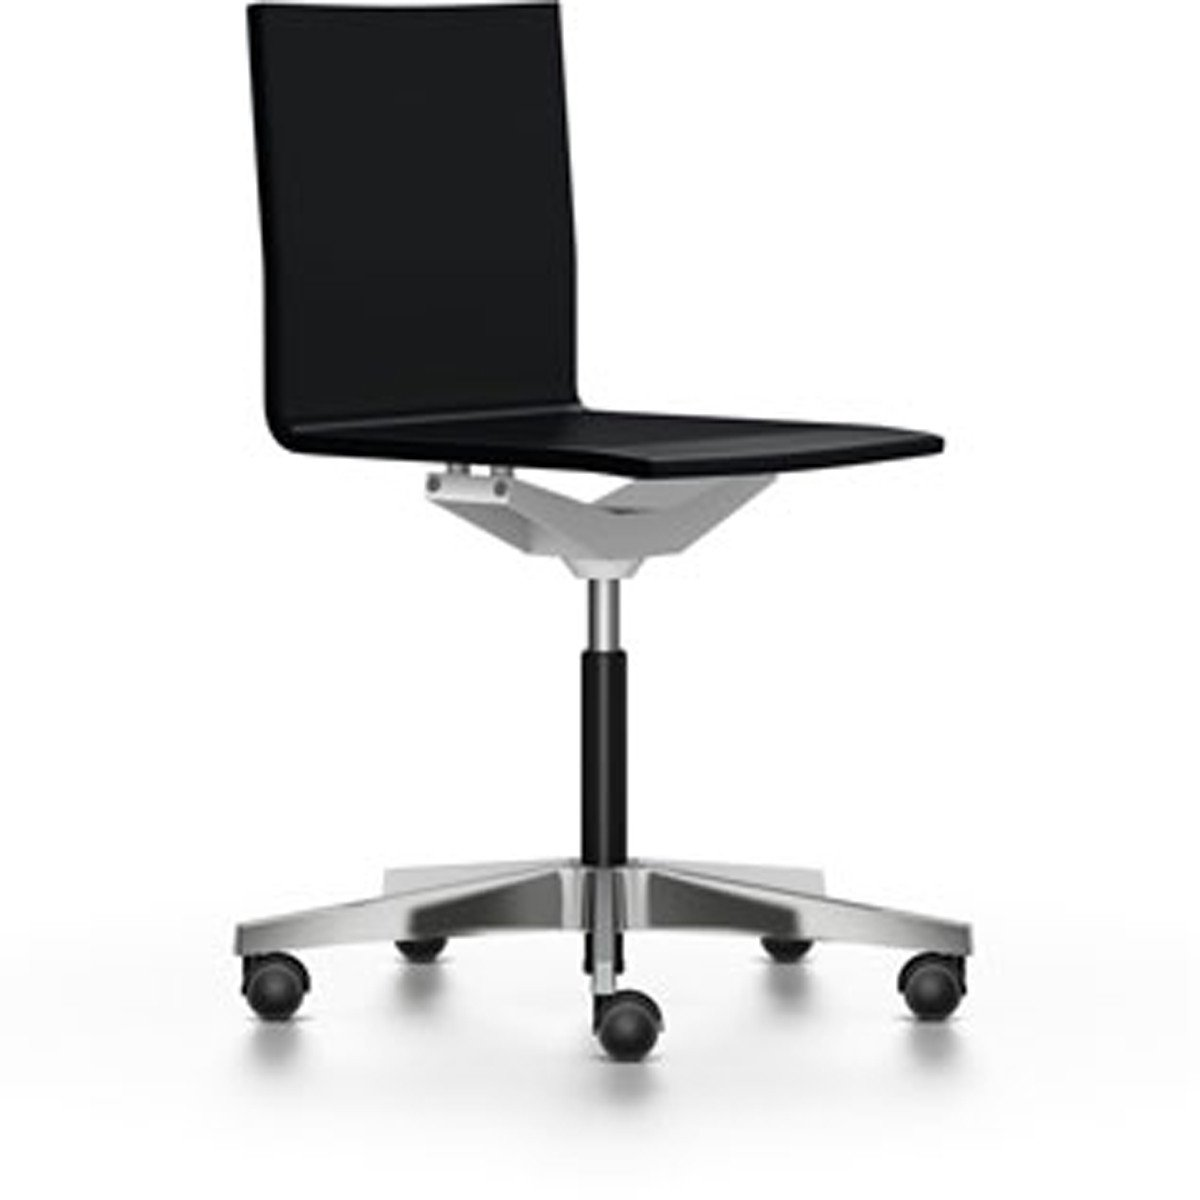 04 chair by vitra - Task Chairs